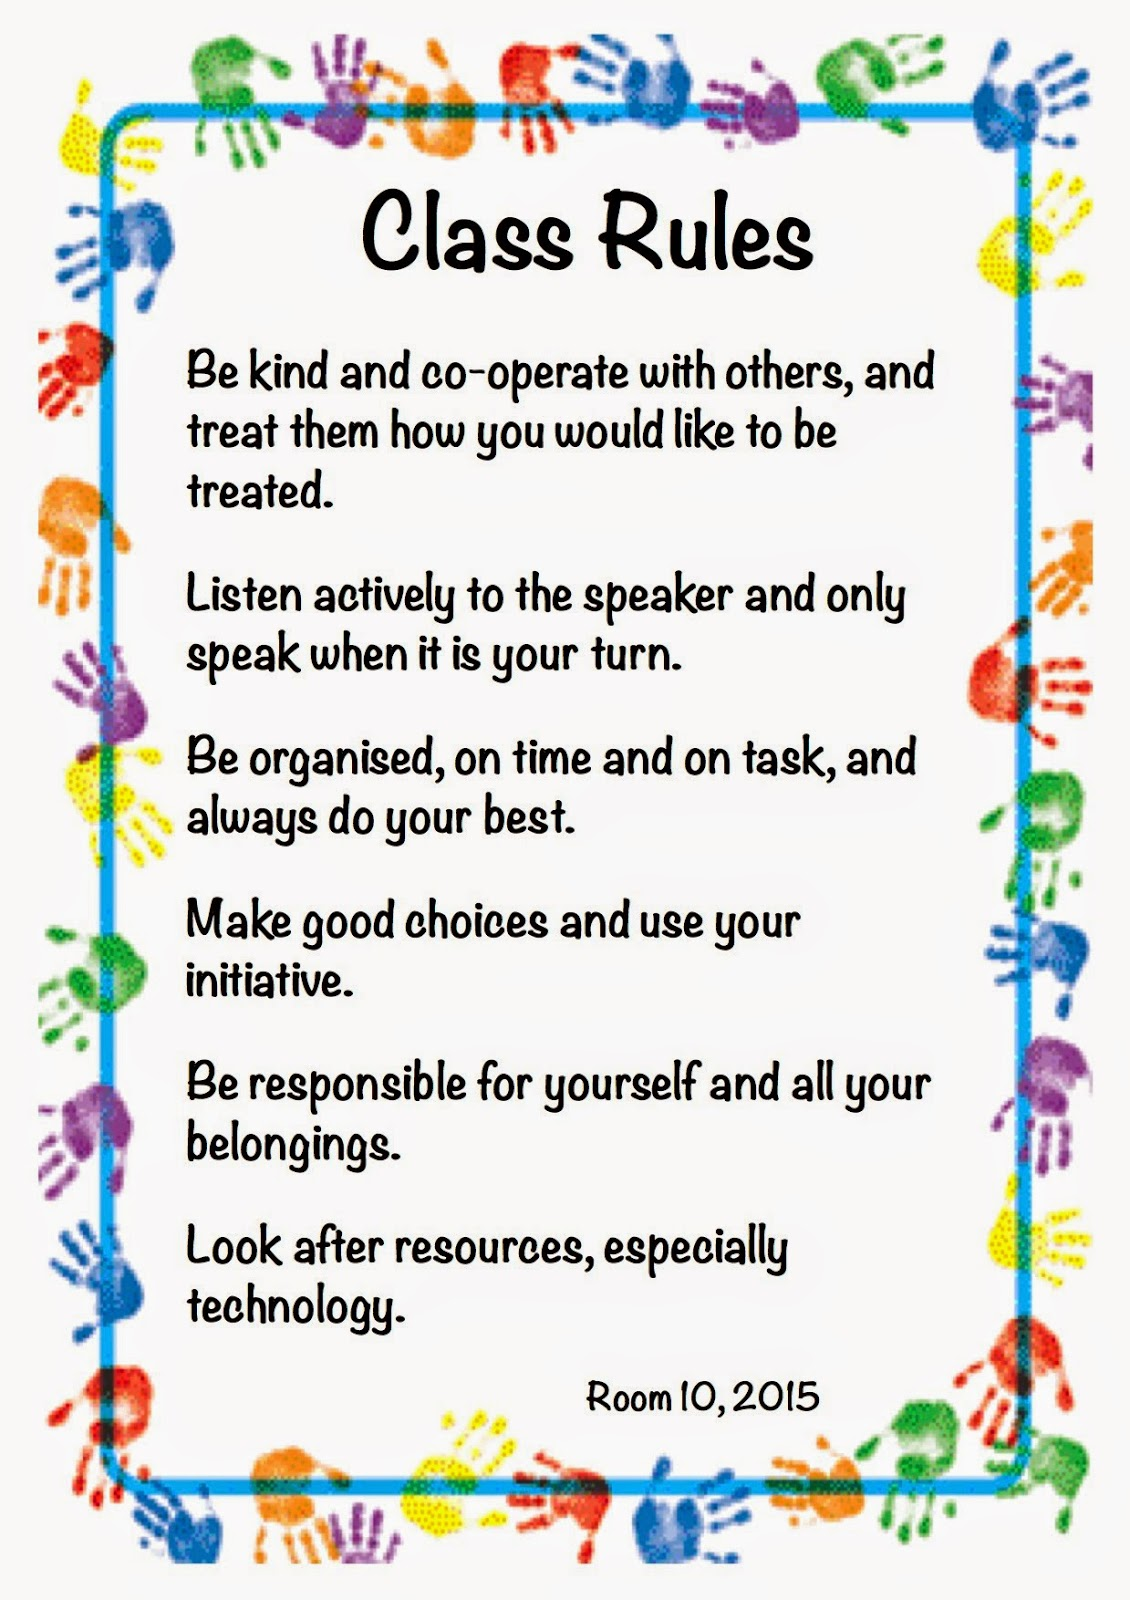 room 10 s class blog our class theme and rules Forgot Homework Clip Art no homework clipart